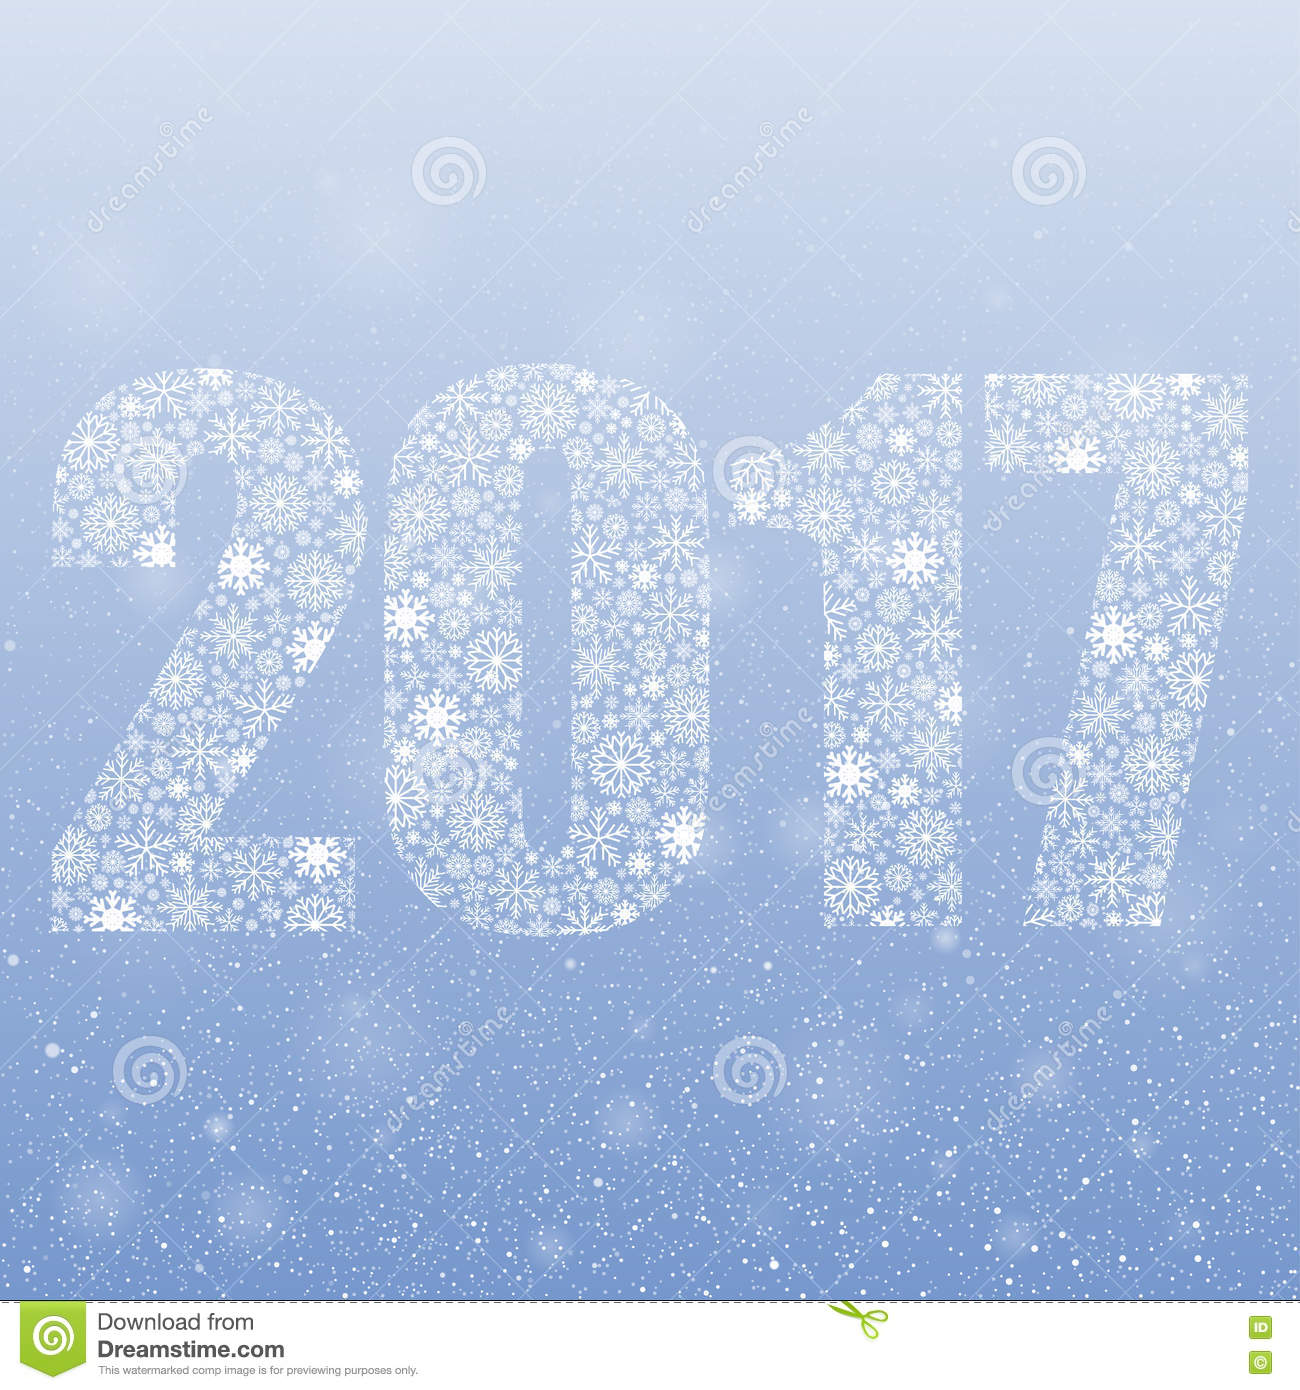 mongodb count document by year